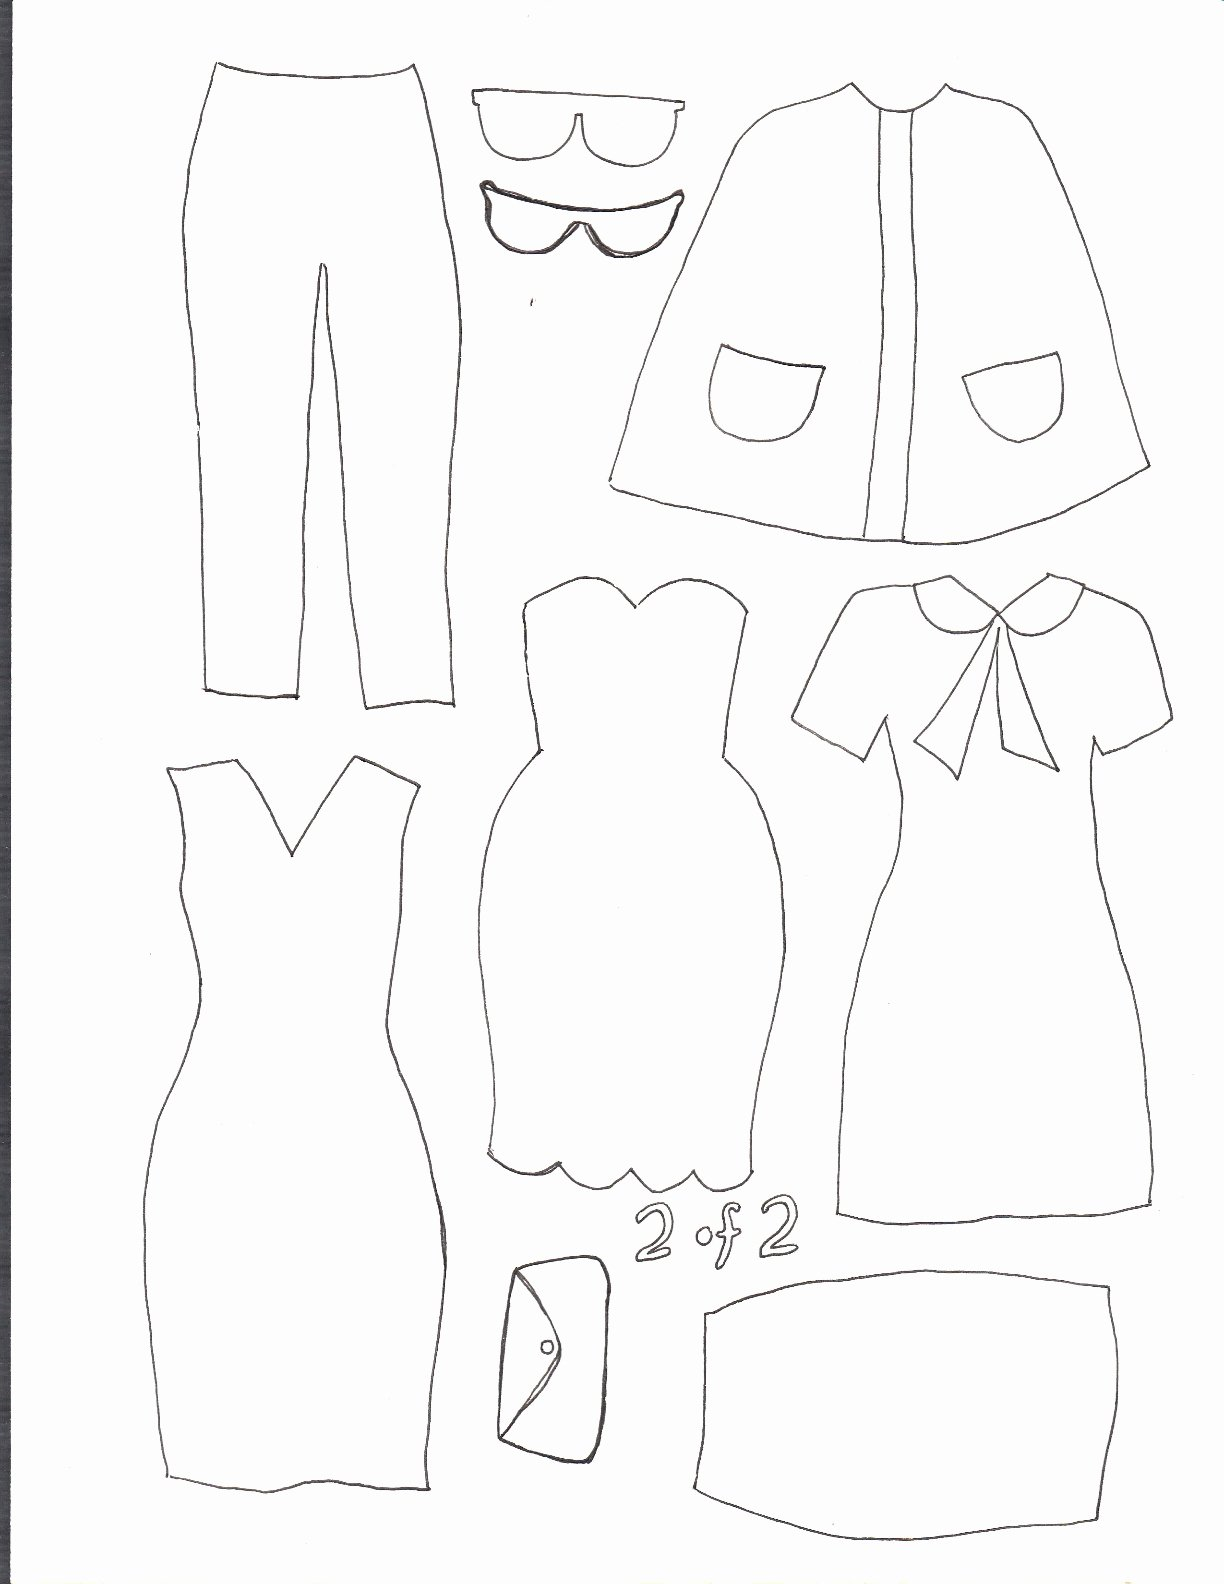 Printable Paper Doll Templates Beautiful Smile and Wave Dress Up Felt Board Tutorial and Template